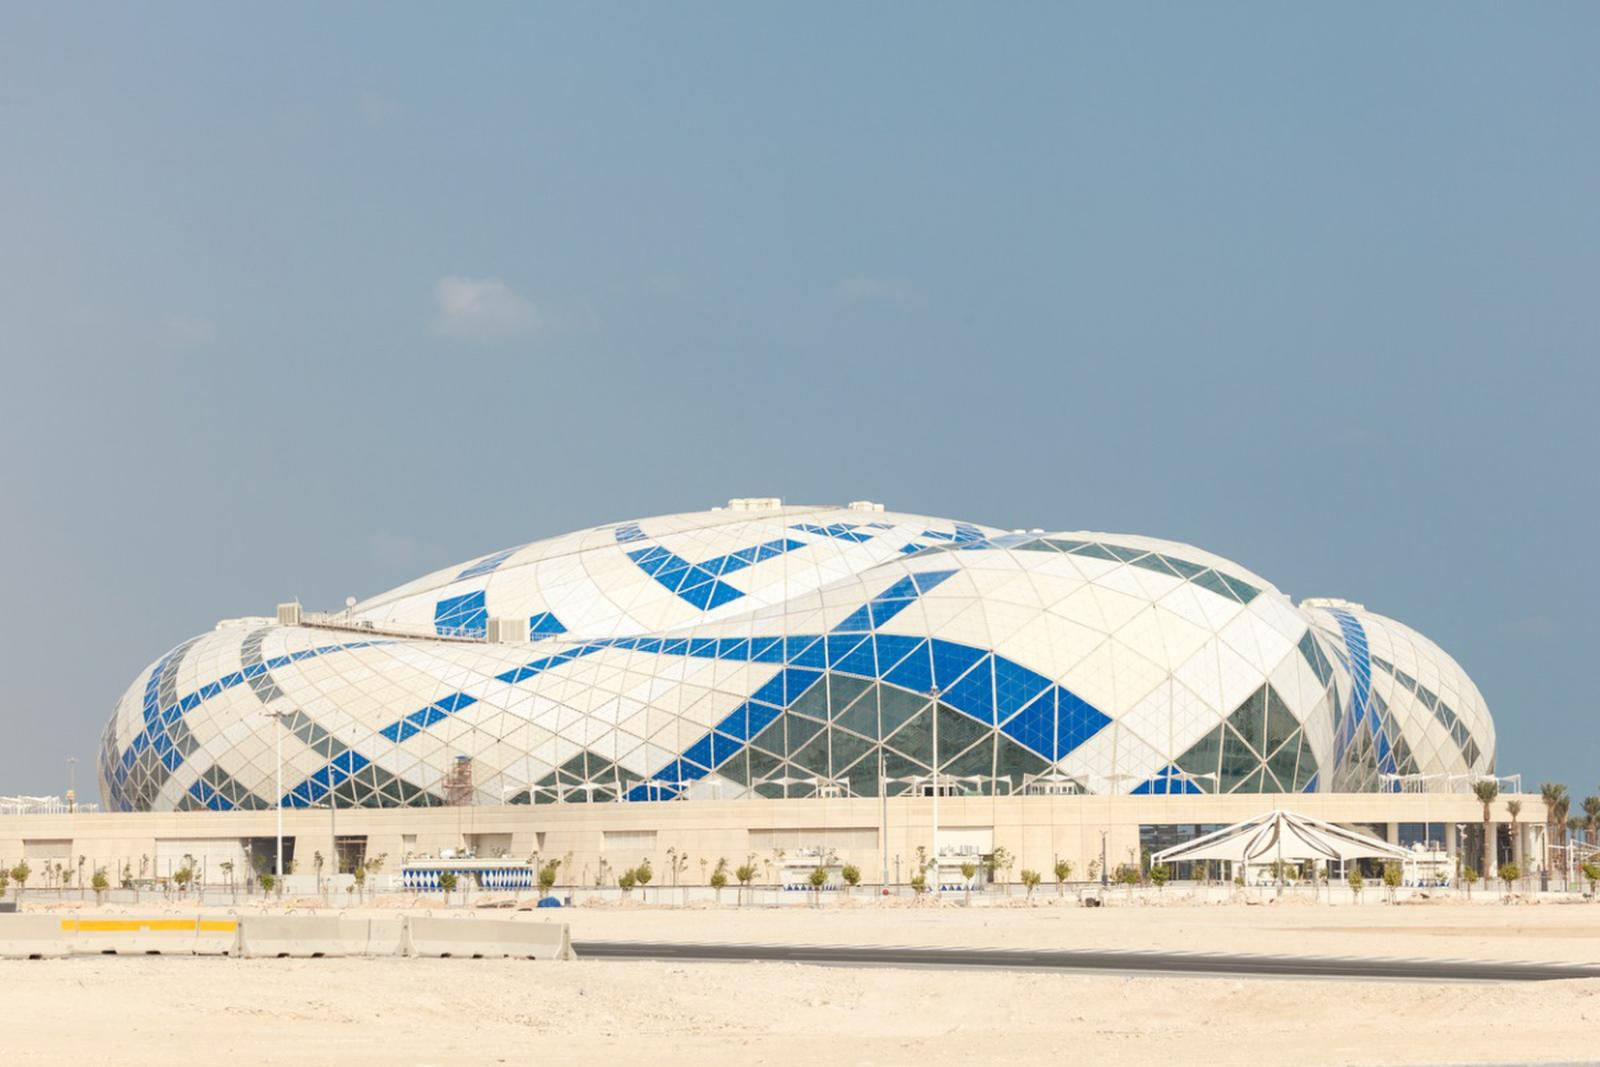 lusail-stadium-qatar - football